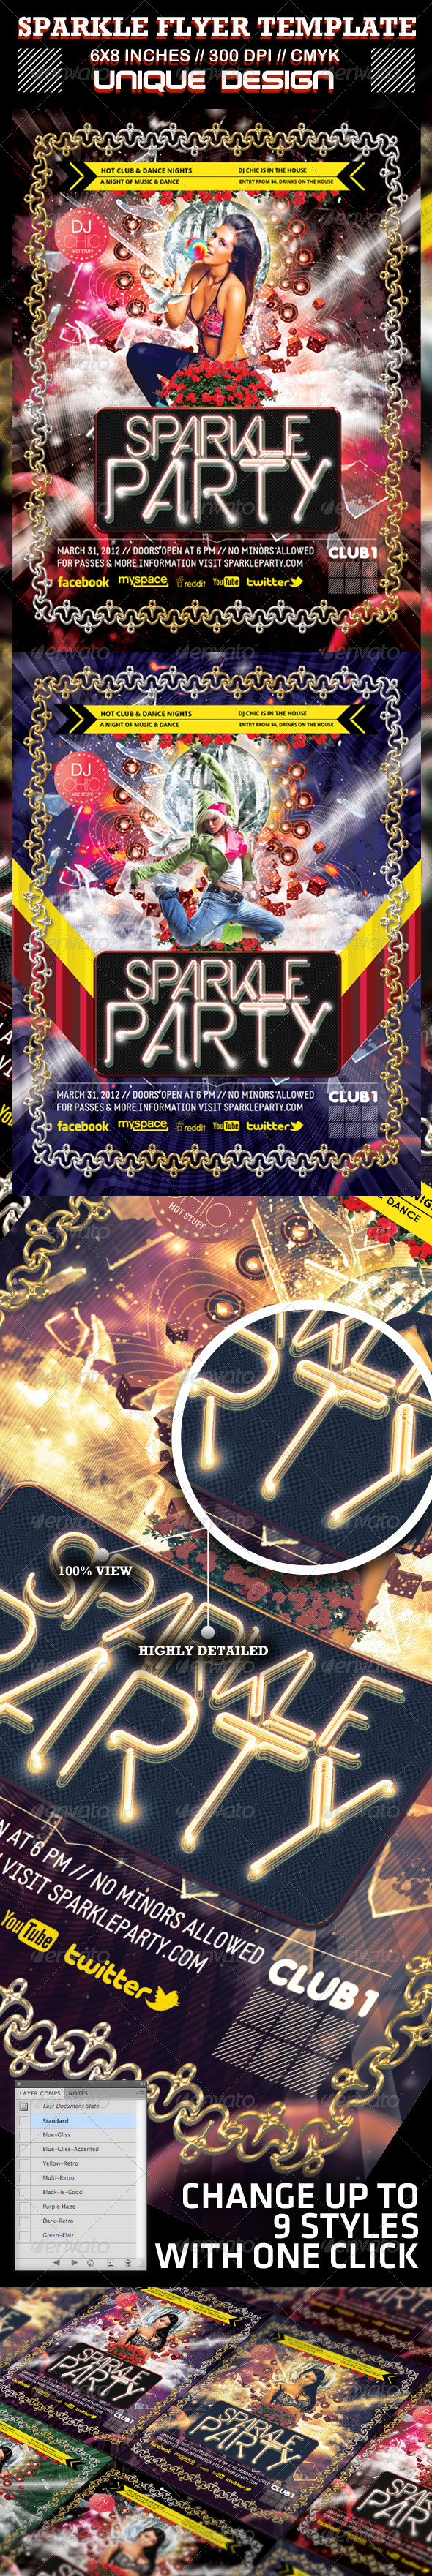 Sparkle Party and Club Flyer Template - Clubs & Parties Events